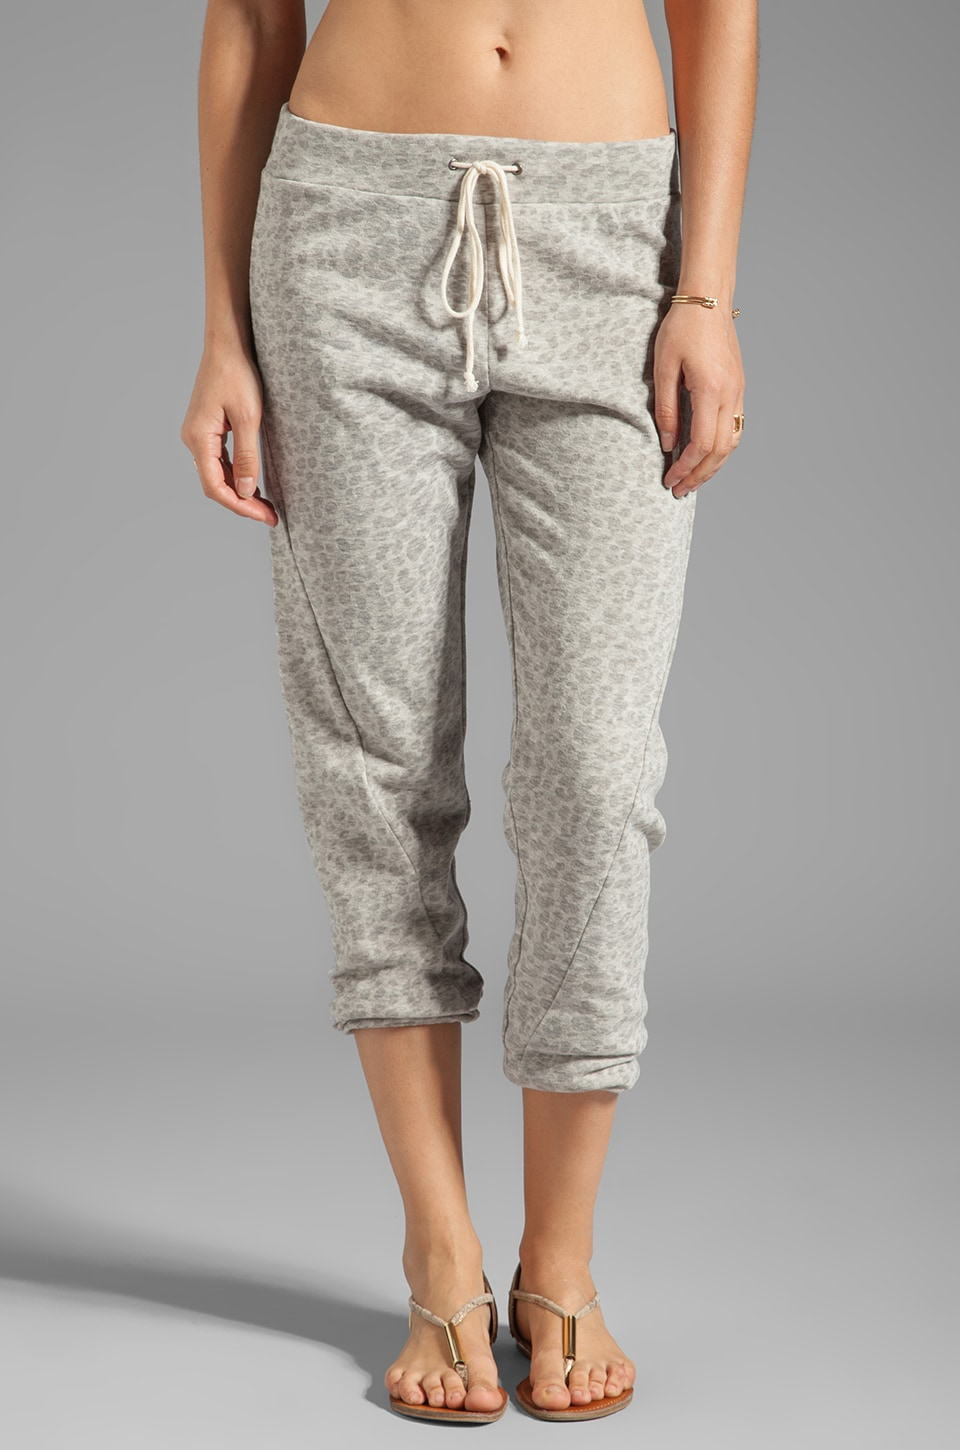 TOWNSEN Cheetah Pants in Grey